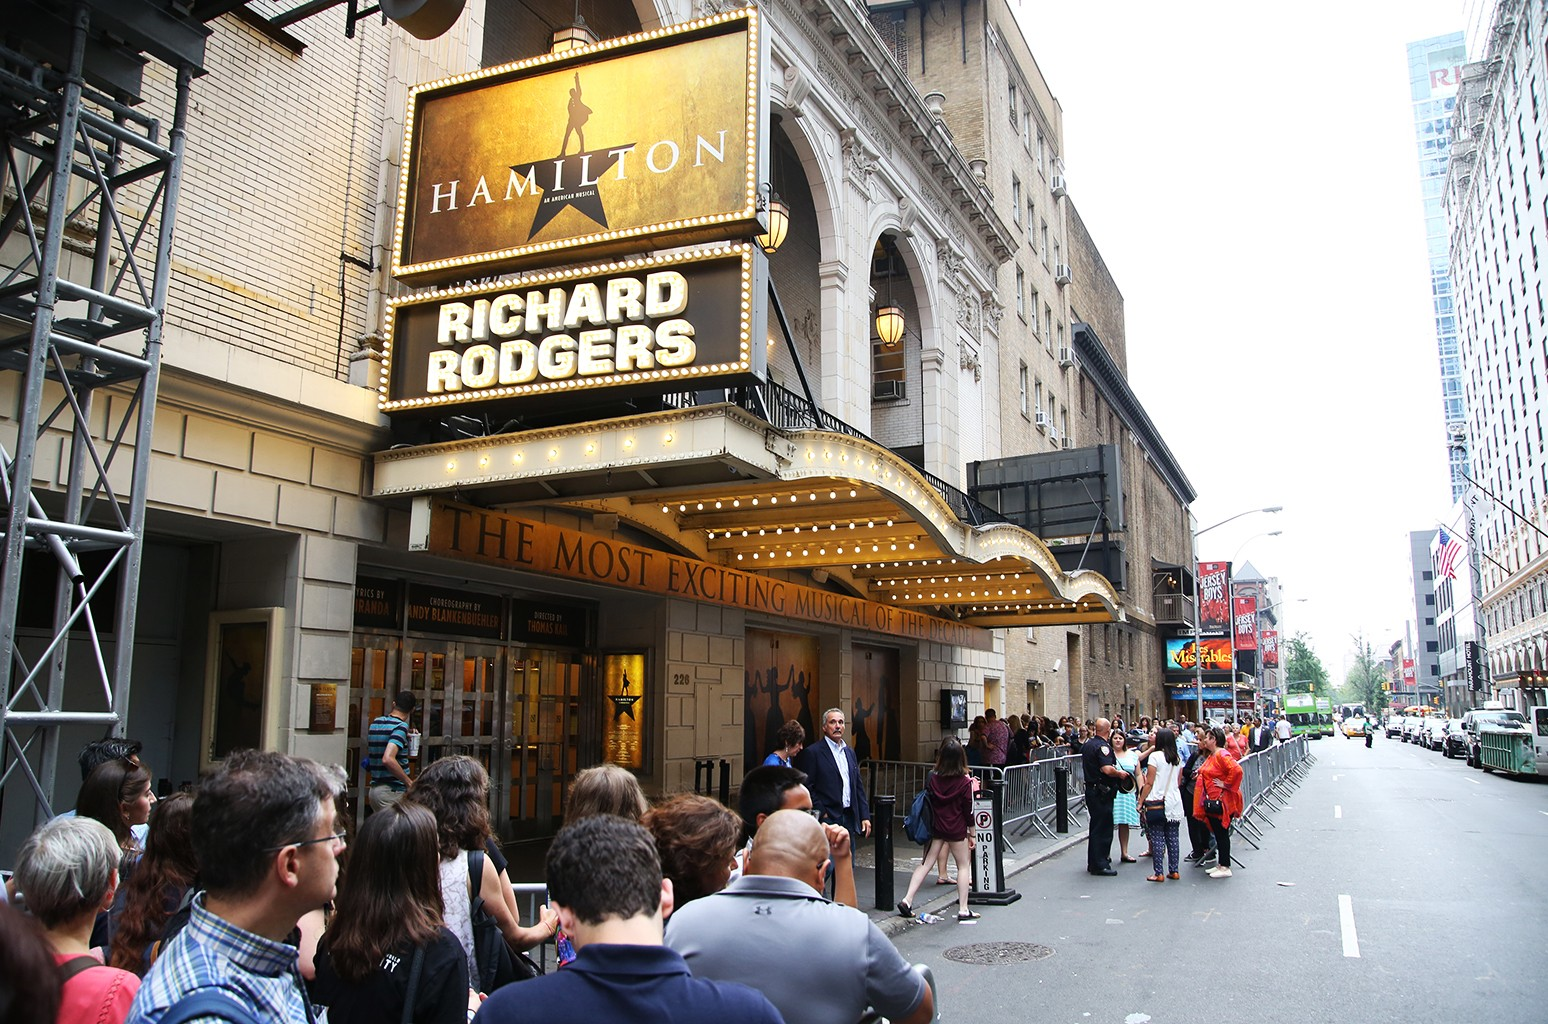 Richard Rodgers Theatre in New York City.